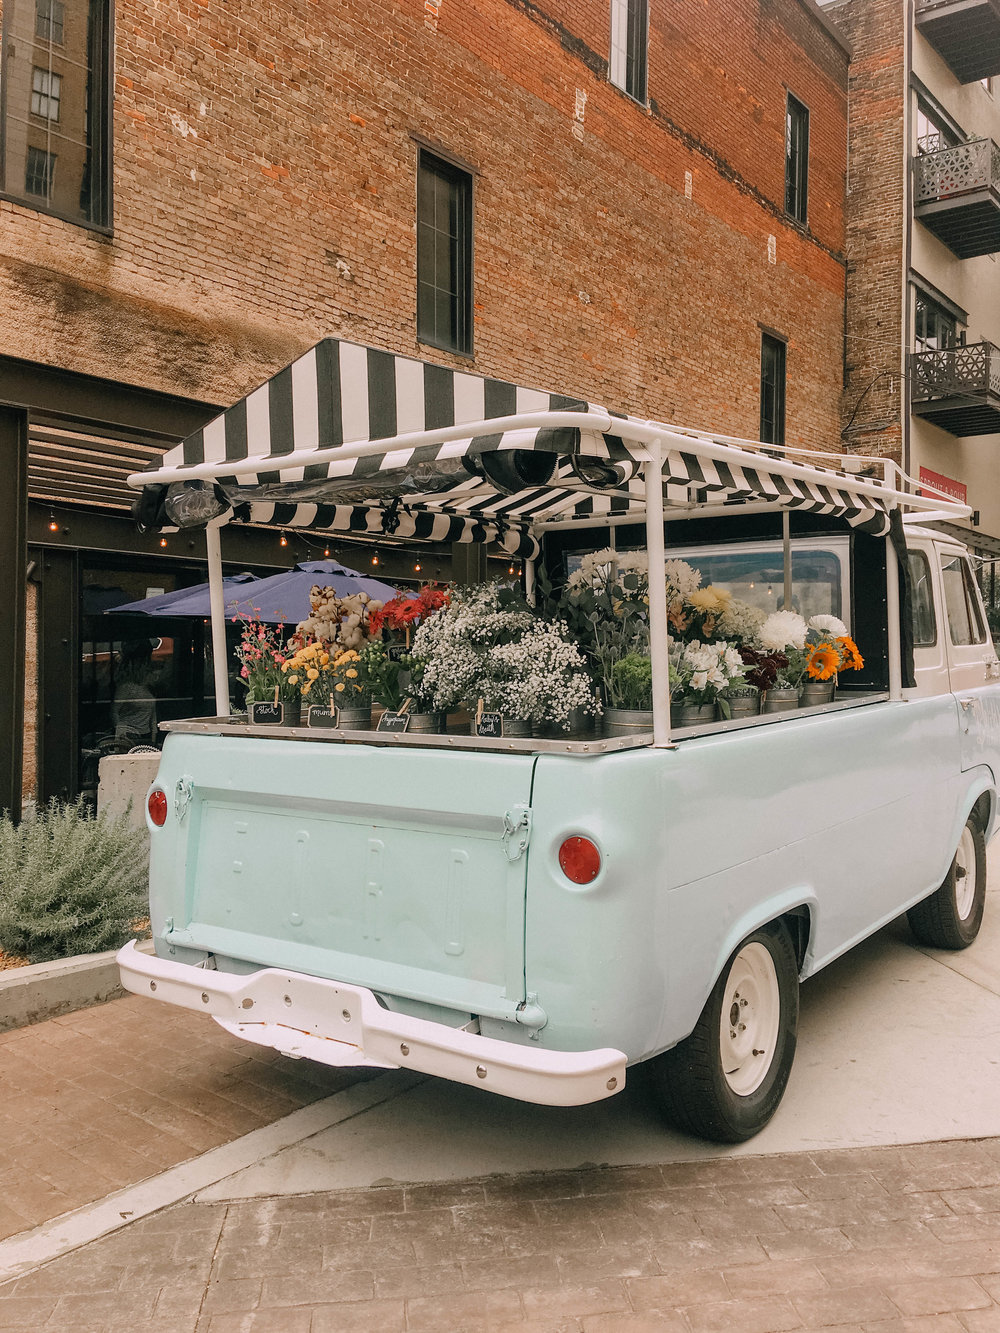 FlowerTruck (1 of 8).JPG